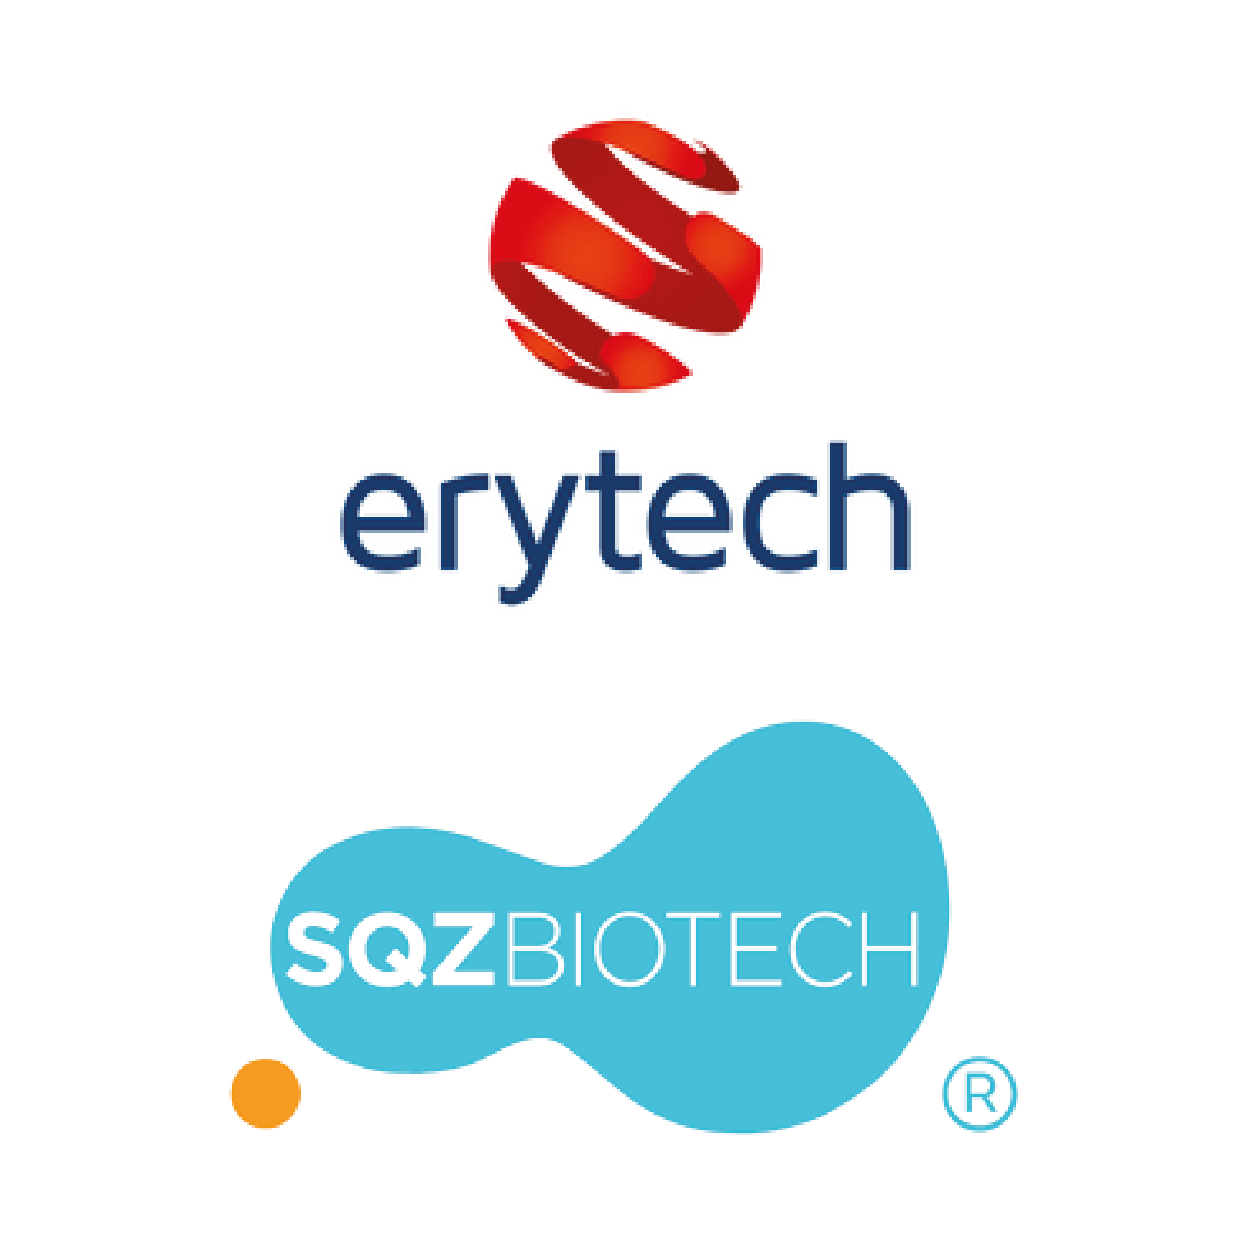 Erytech and SQZ Biotechnology